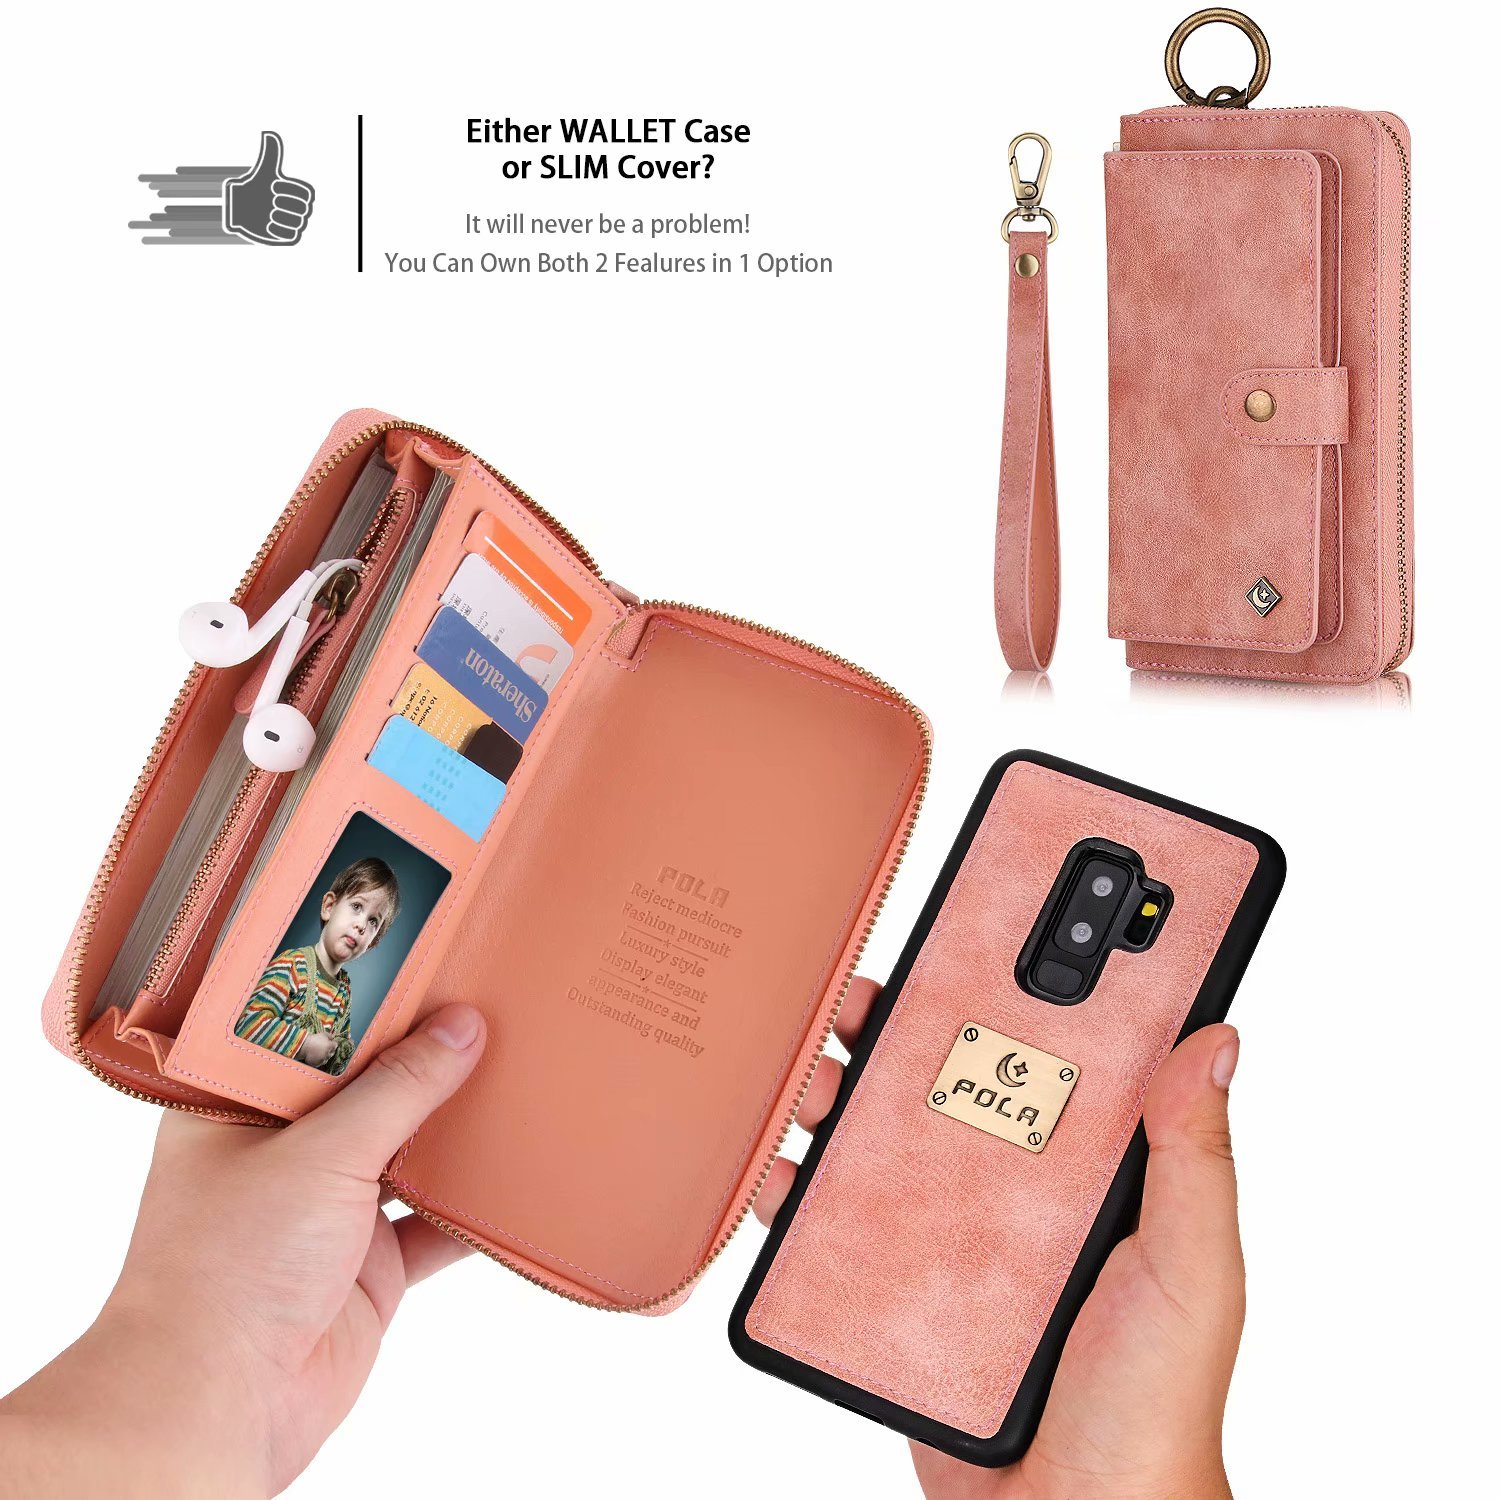 Galaxy S9 Plus Wallet Phone Case,GX-LV Samsung Galaxy S9 Plus Wallet Case Leather Case Cover Zipper Pouch with 14 Card Holder,Magnetic Detachable Case For Samsung Galaxy S9 Plus (Pink) by GX-LV (Image #3)